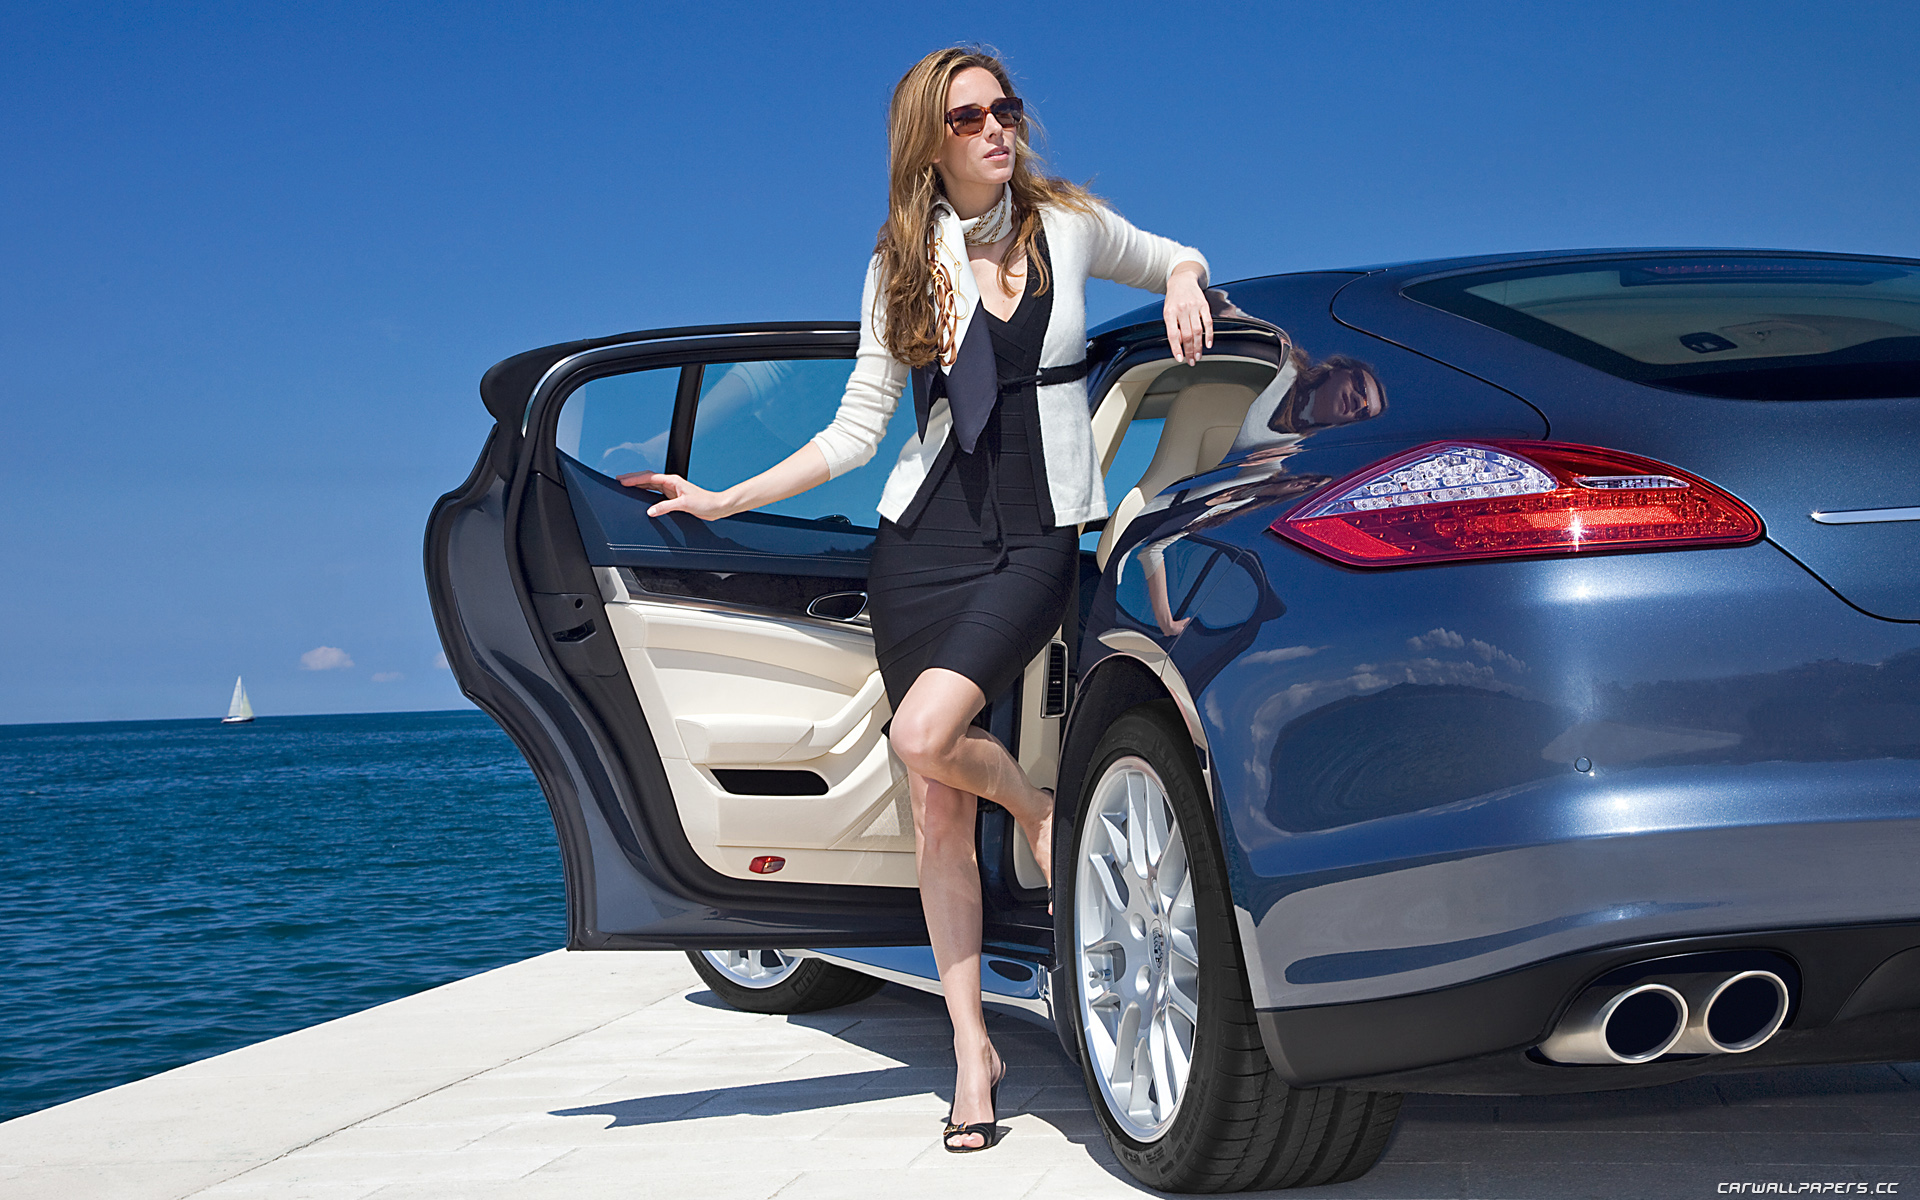 woman-with-car-wallpaper-8